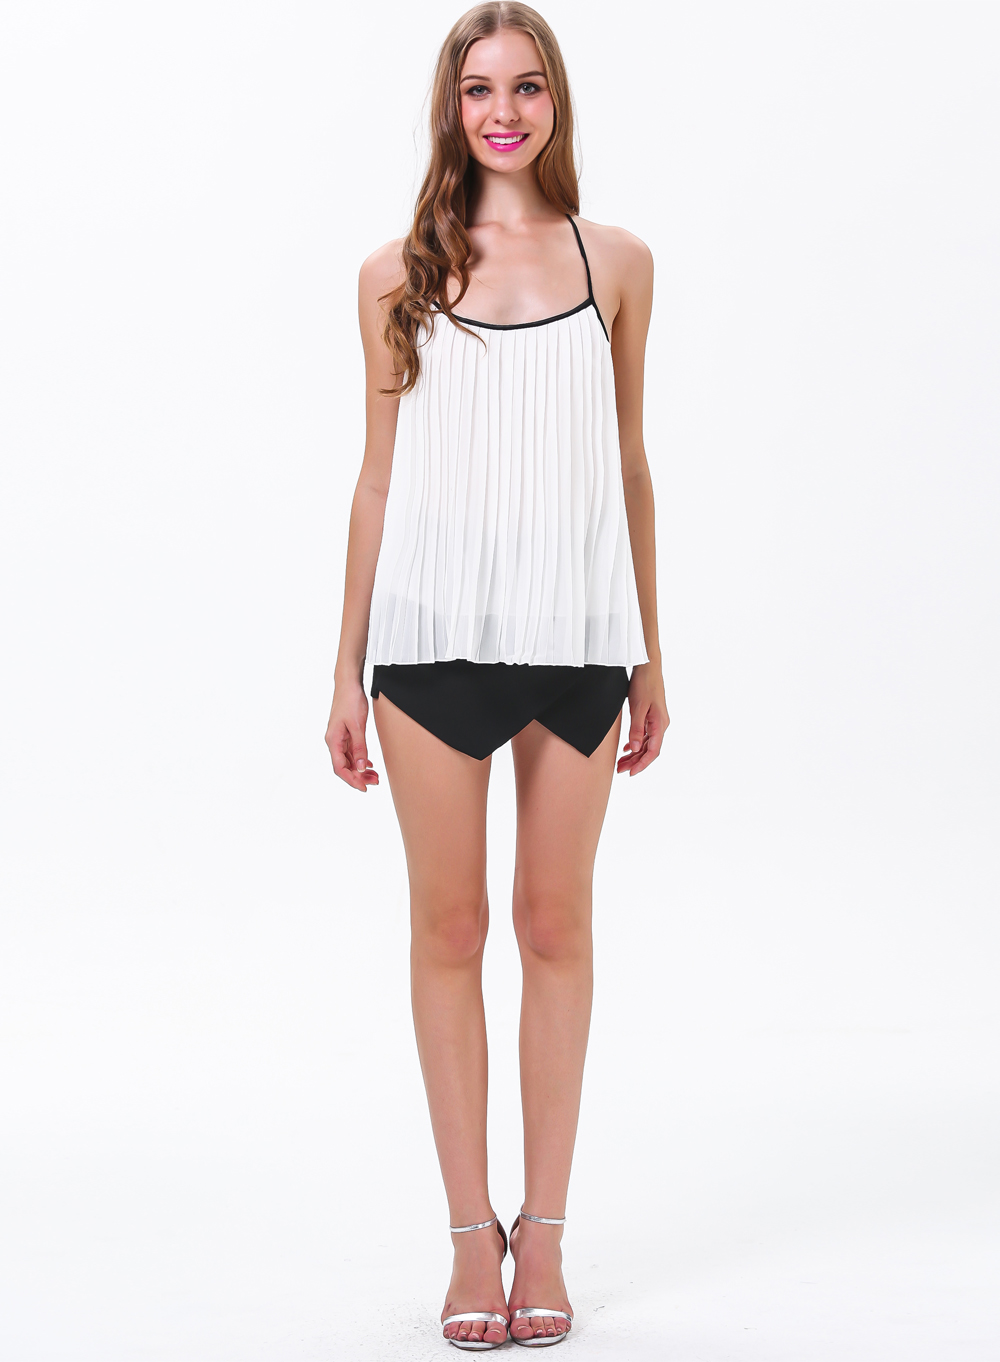 White Spaghetti Strap Backless Pleated Top - Sheinside.com